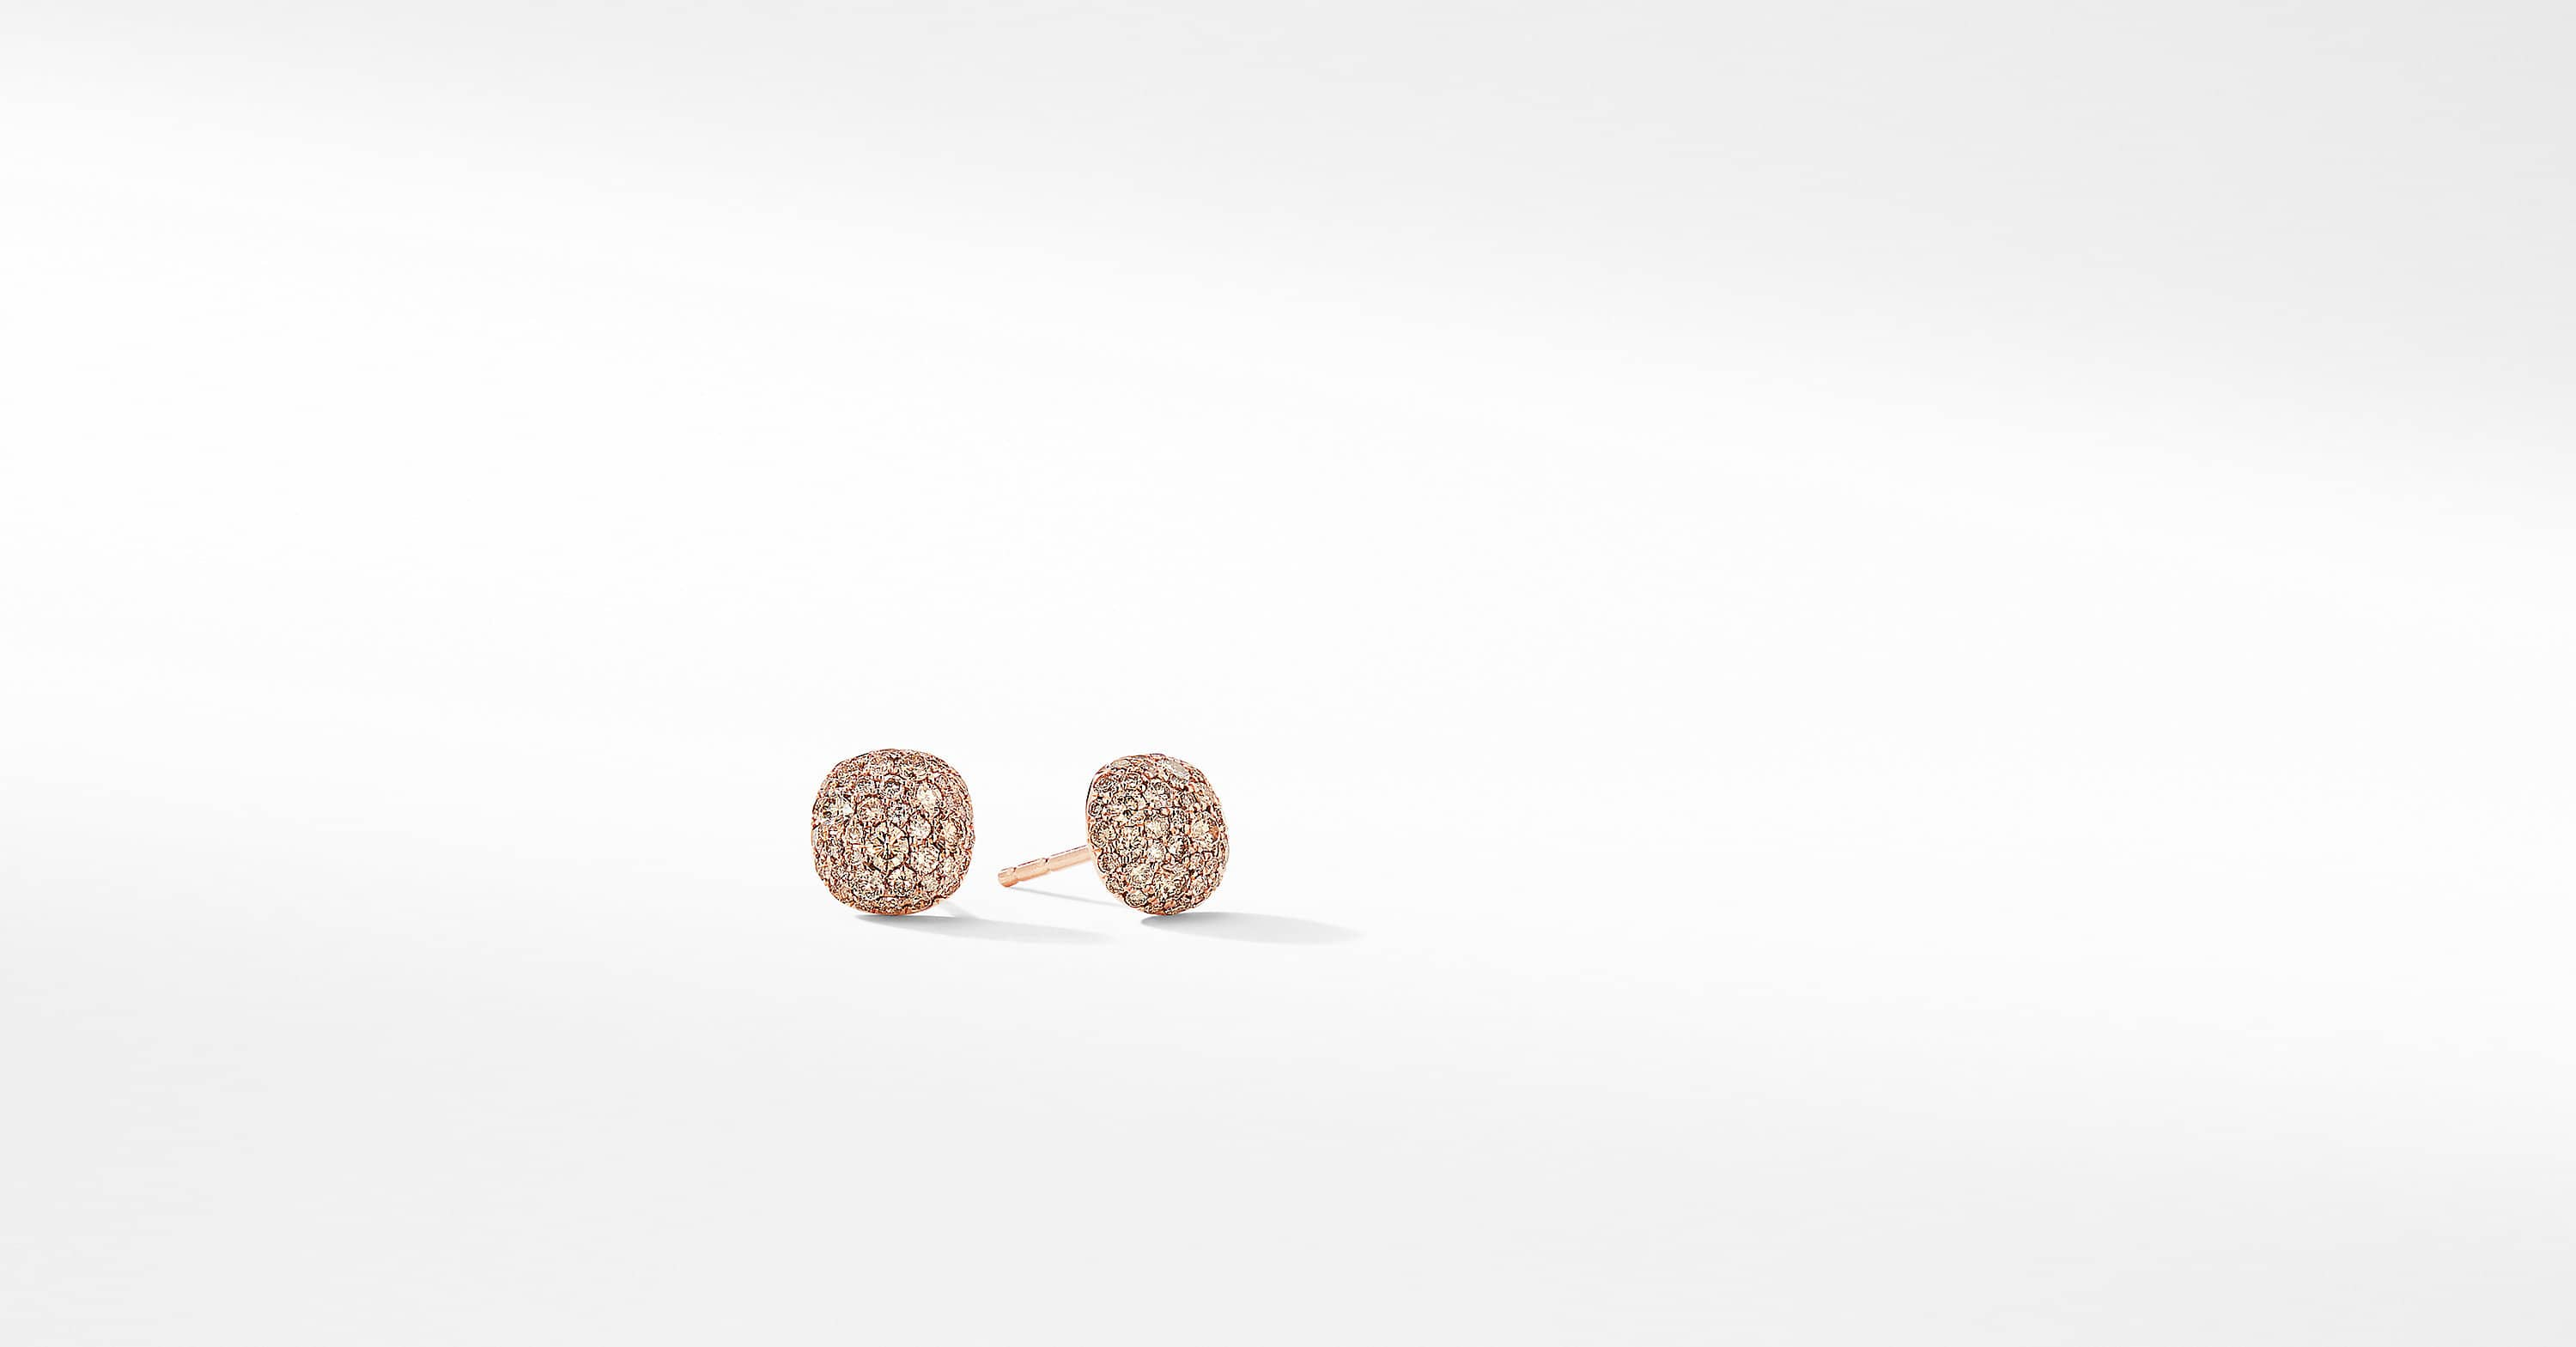 Small Cushion Stud Earrings in 18K Rose Gold with Pavé